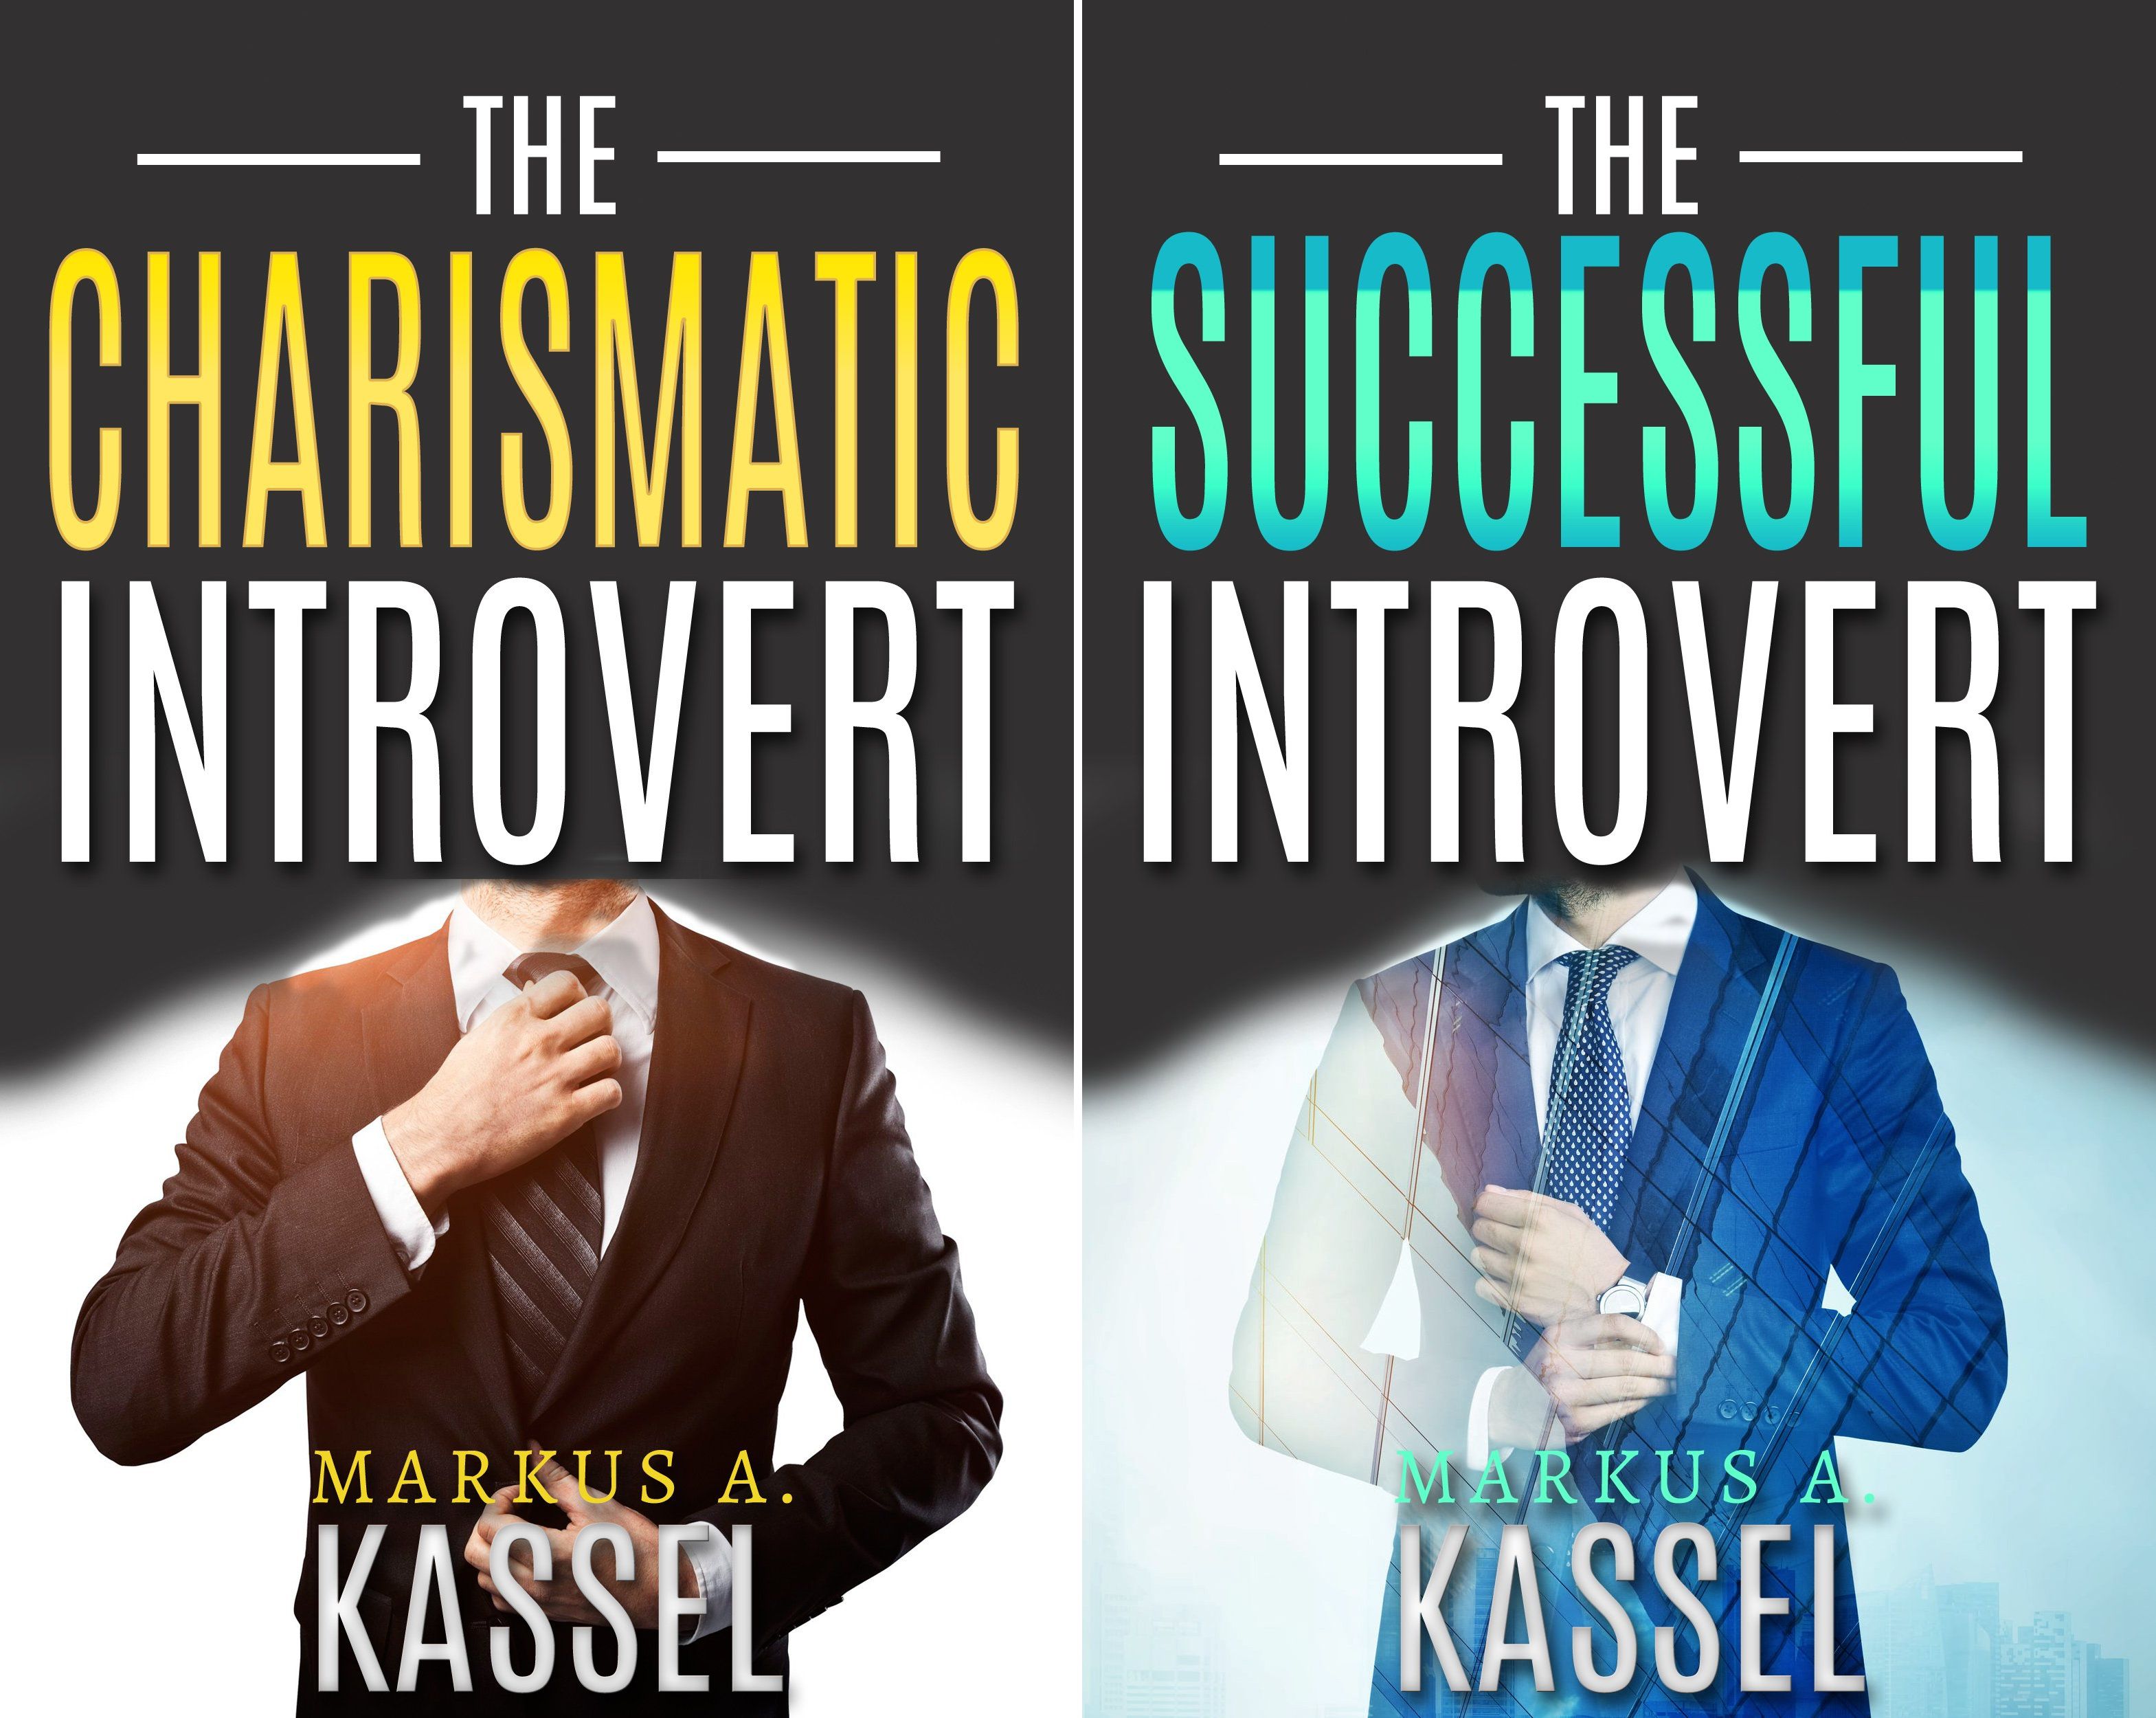 The Introvert's Path to Self-Fulfillment (2 Book Series)